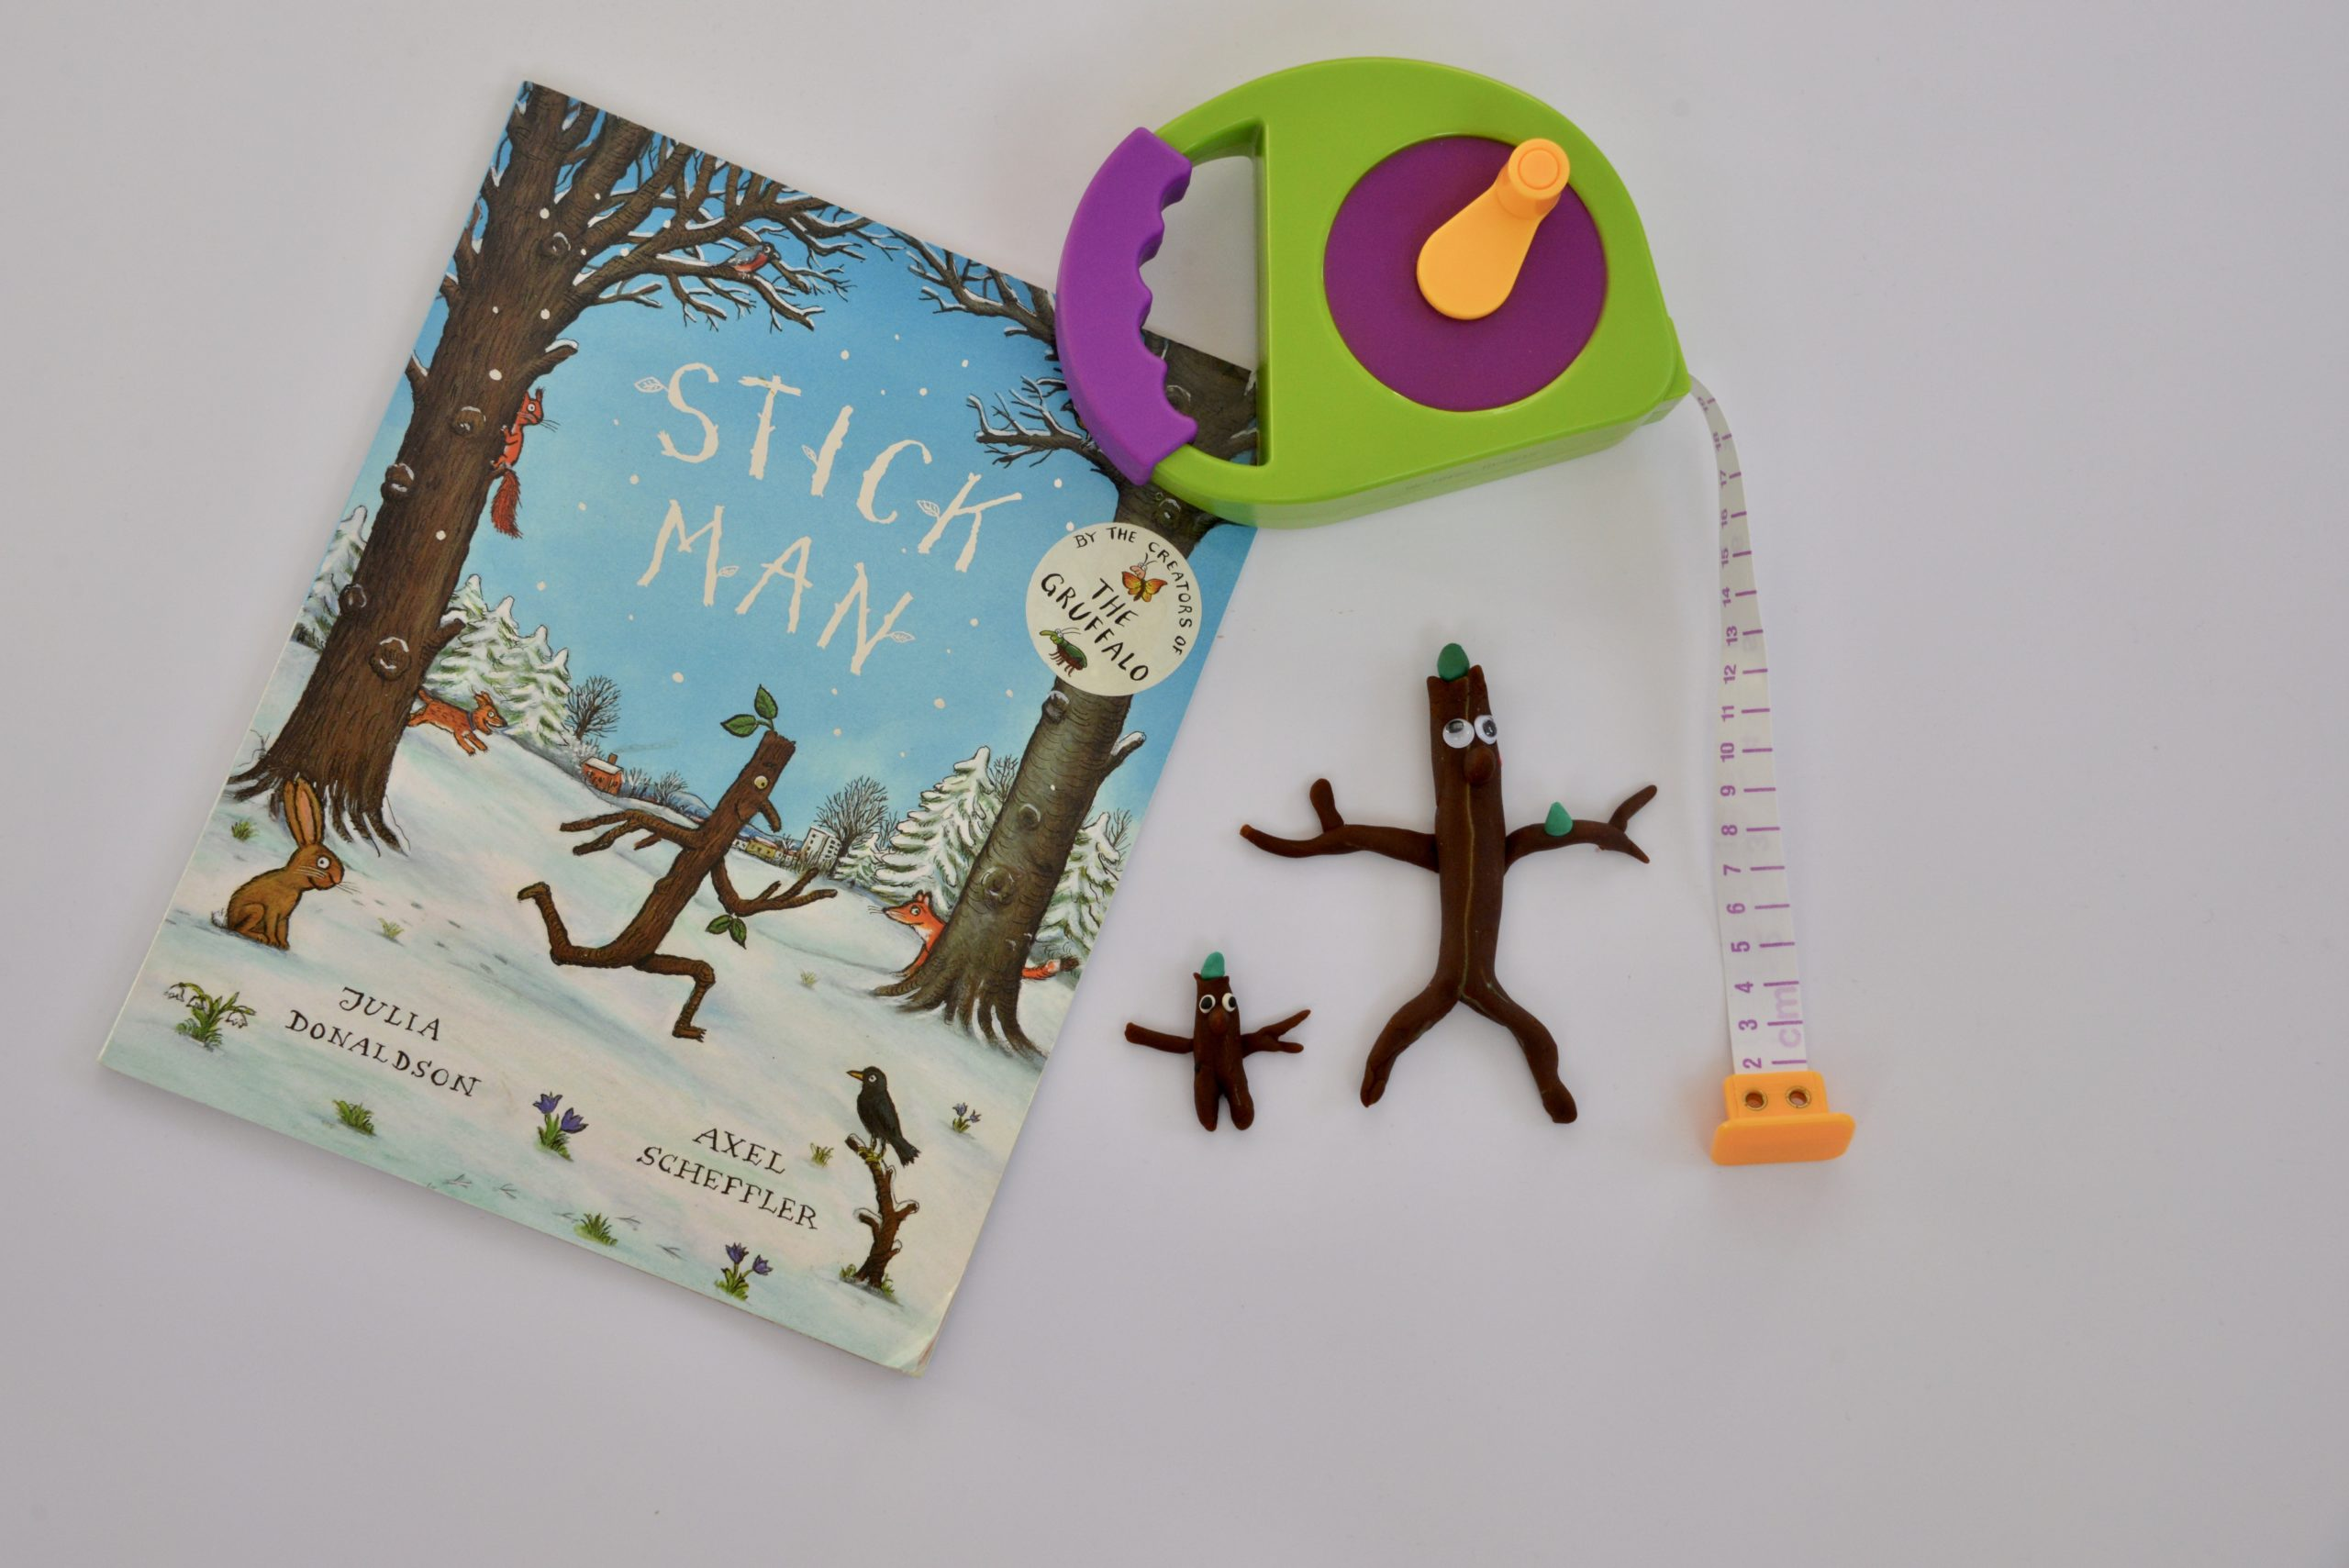 Stick Man Play dough